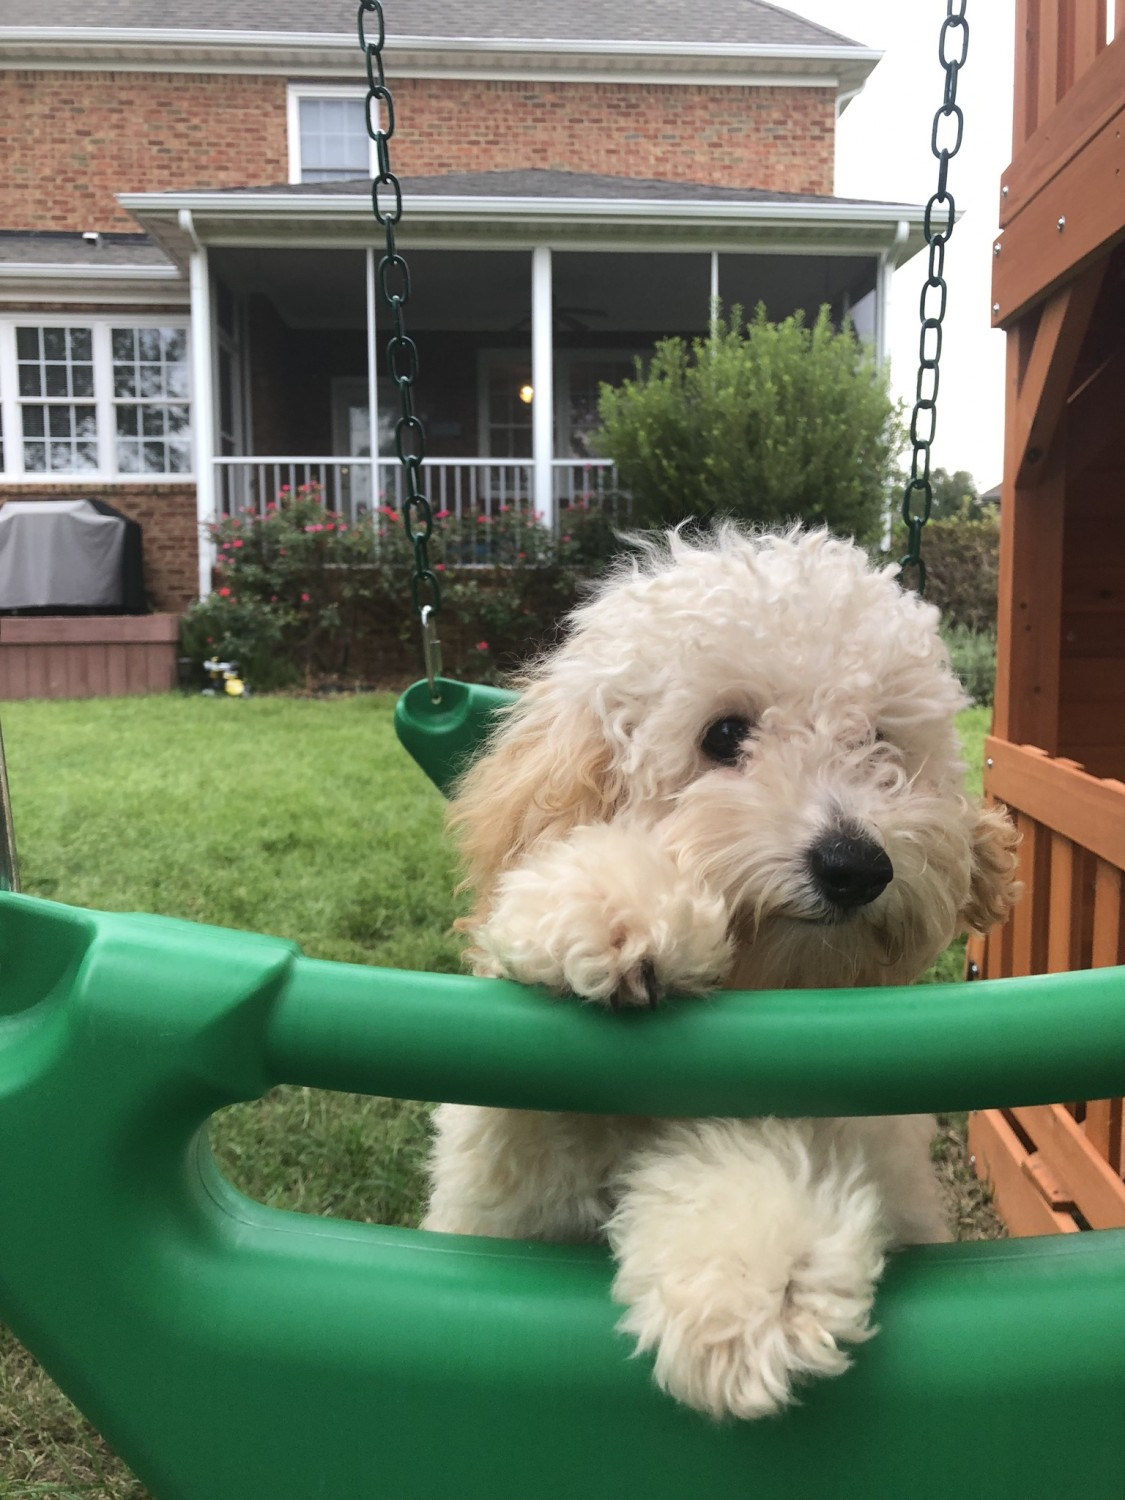 Toy Poodle Puppies For Sale Lambardi Court Va 308824